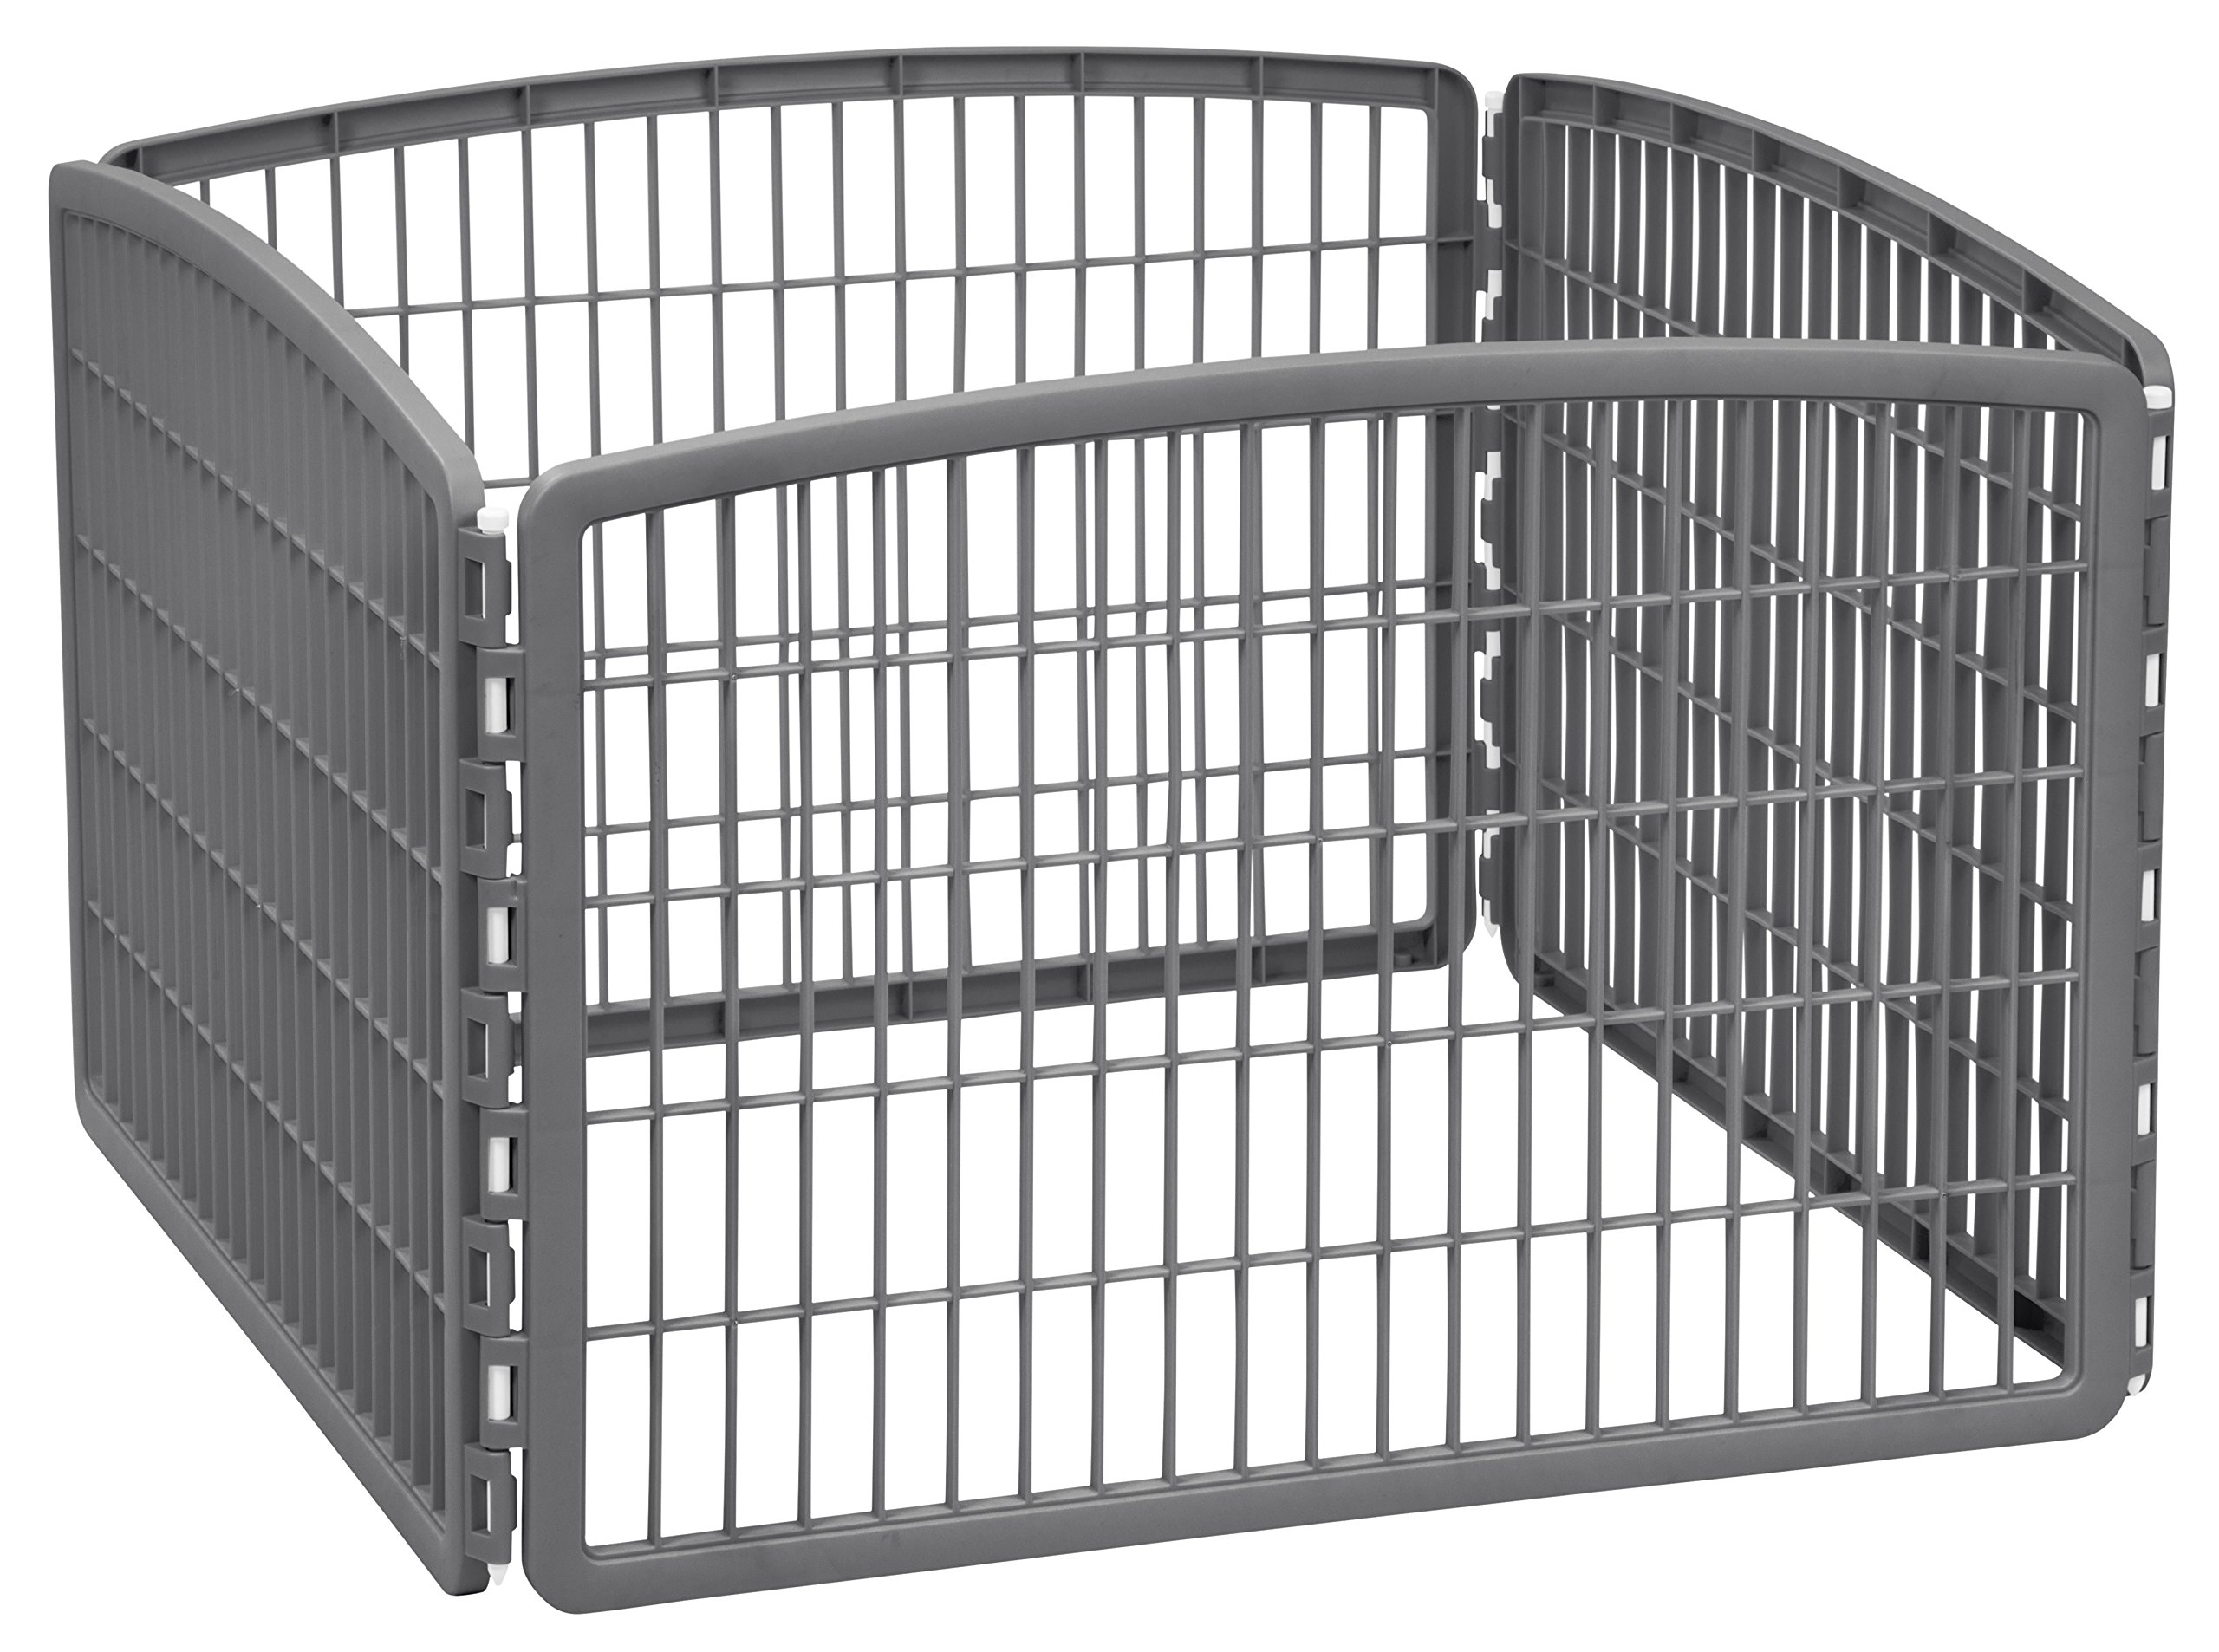 IRIS 24'' Exercise 4-Panel Pet Playpen without Door, Dark Gray by IRIS USA, Inc.